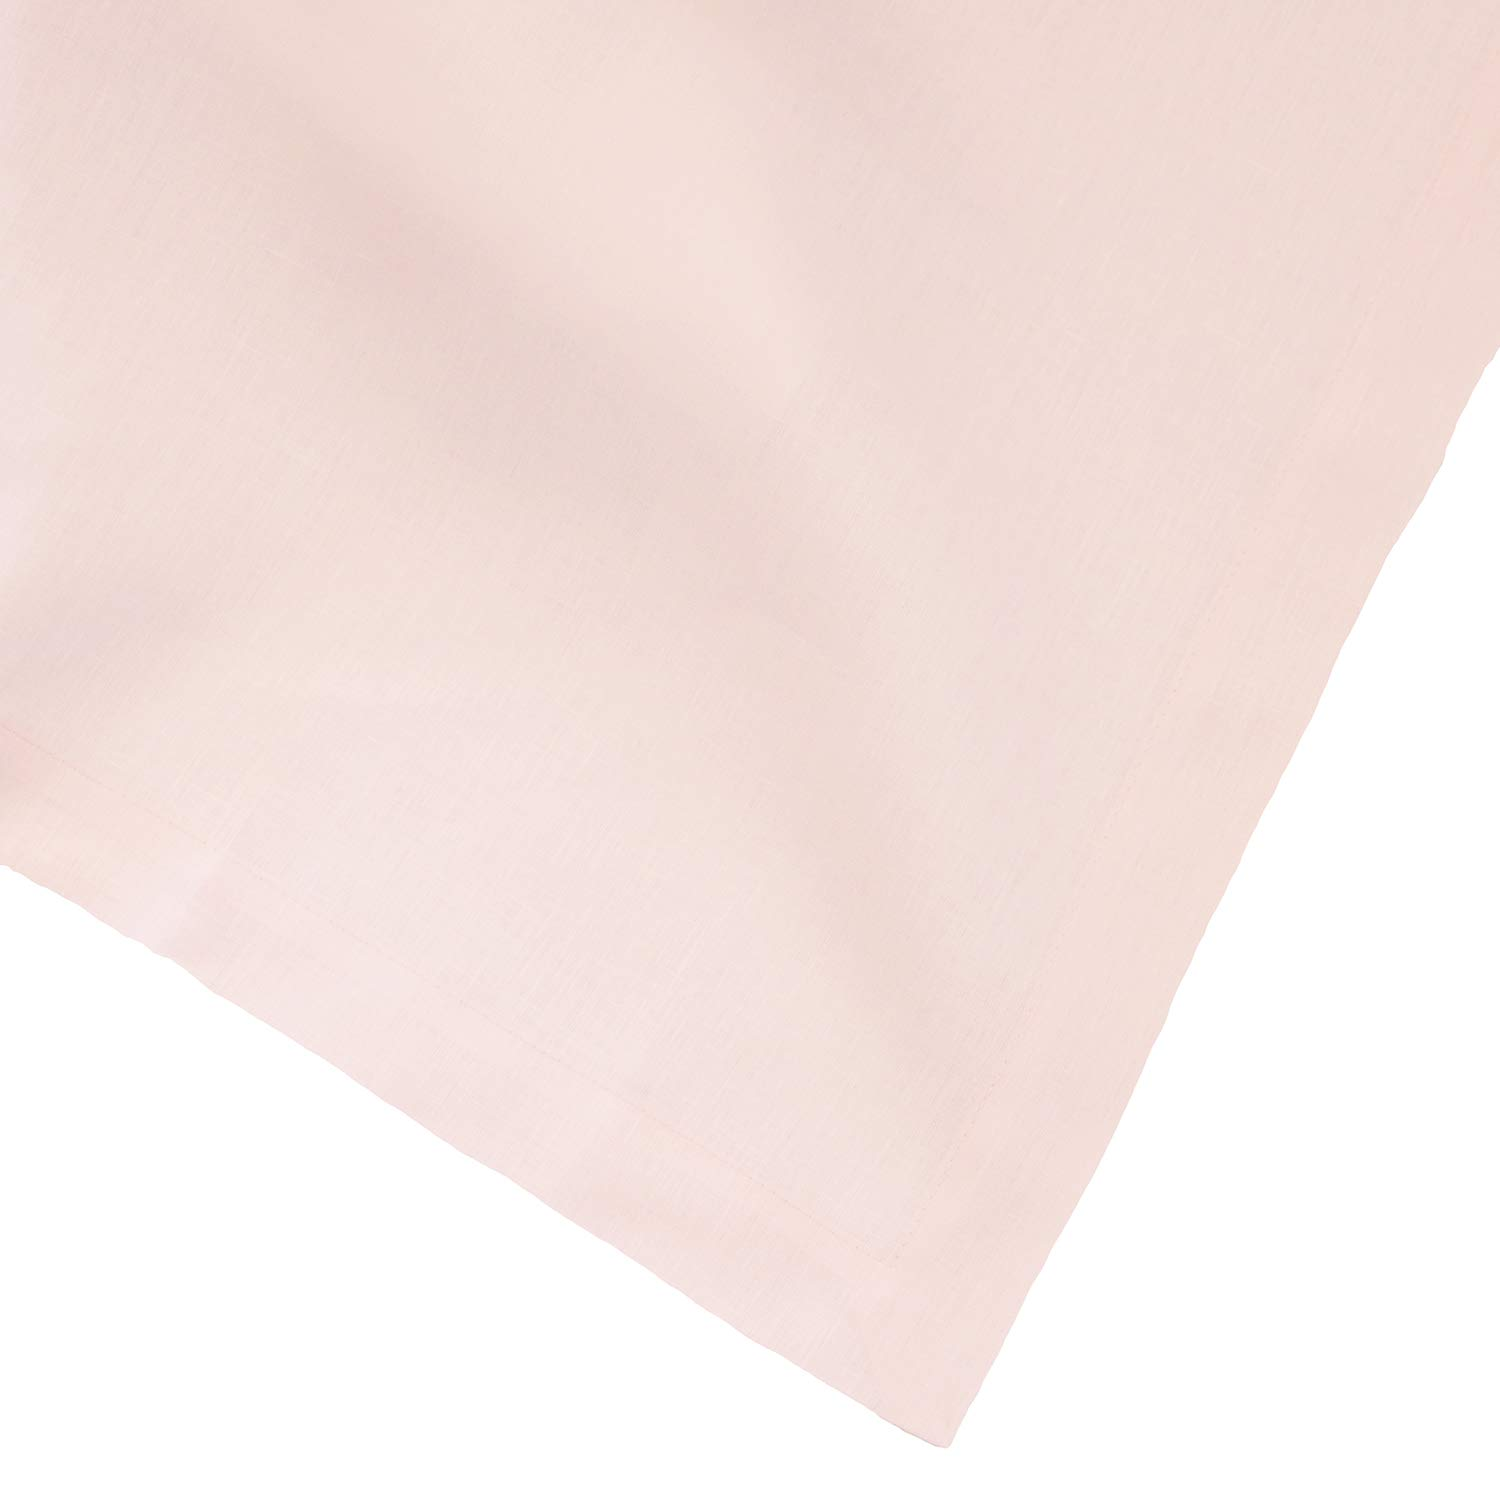 Huddleson Pink Pure Linen Napkin 20x20 (Set of Four)